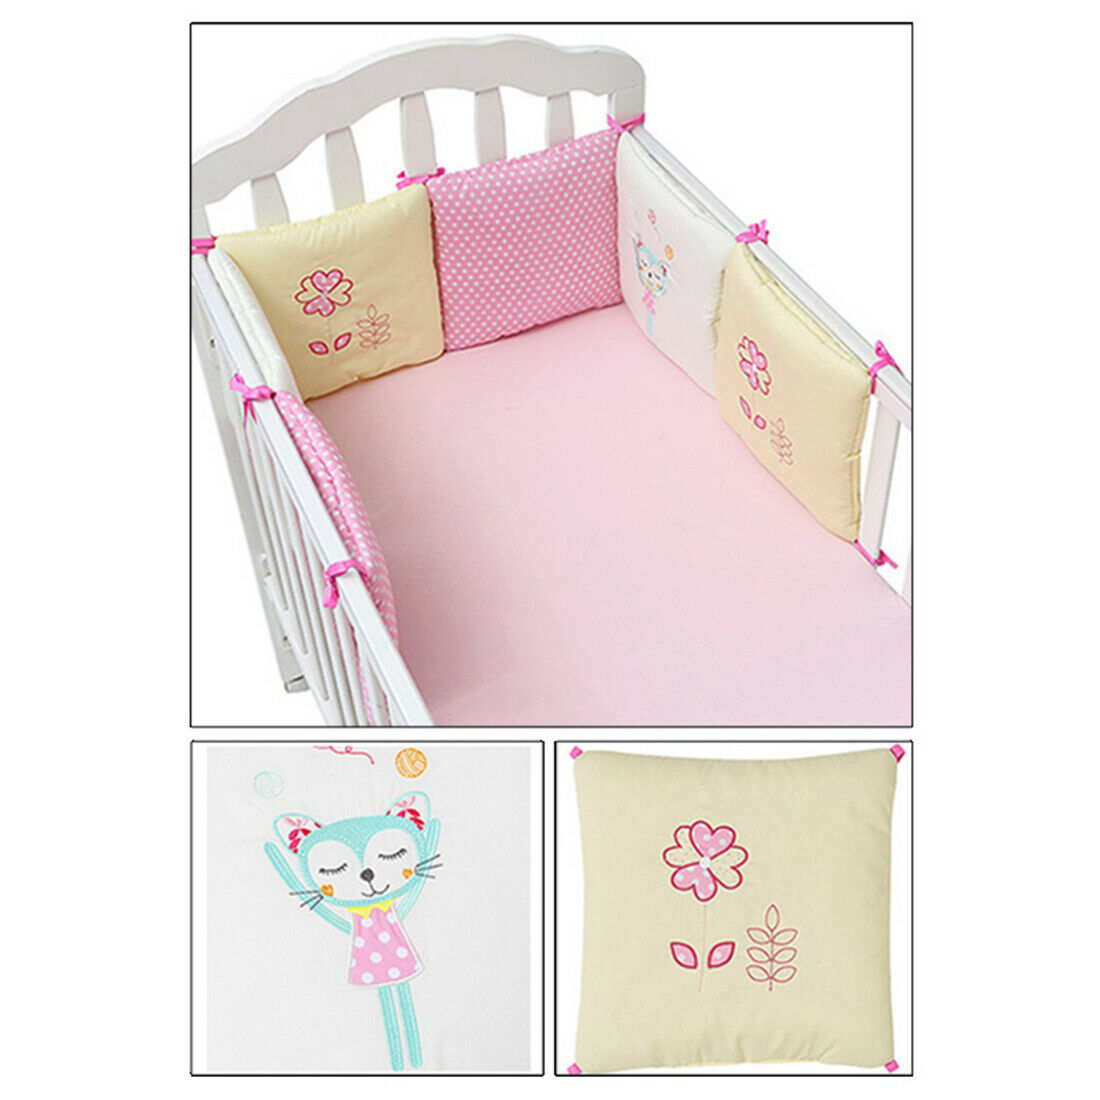 HengST 6pcs Baby Cot Bumper Crib Bumper with Geometric Patterns Baby Head Protection Pads Protector Cushions Star and Wave